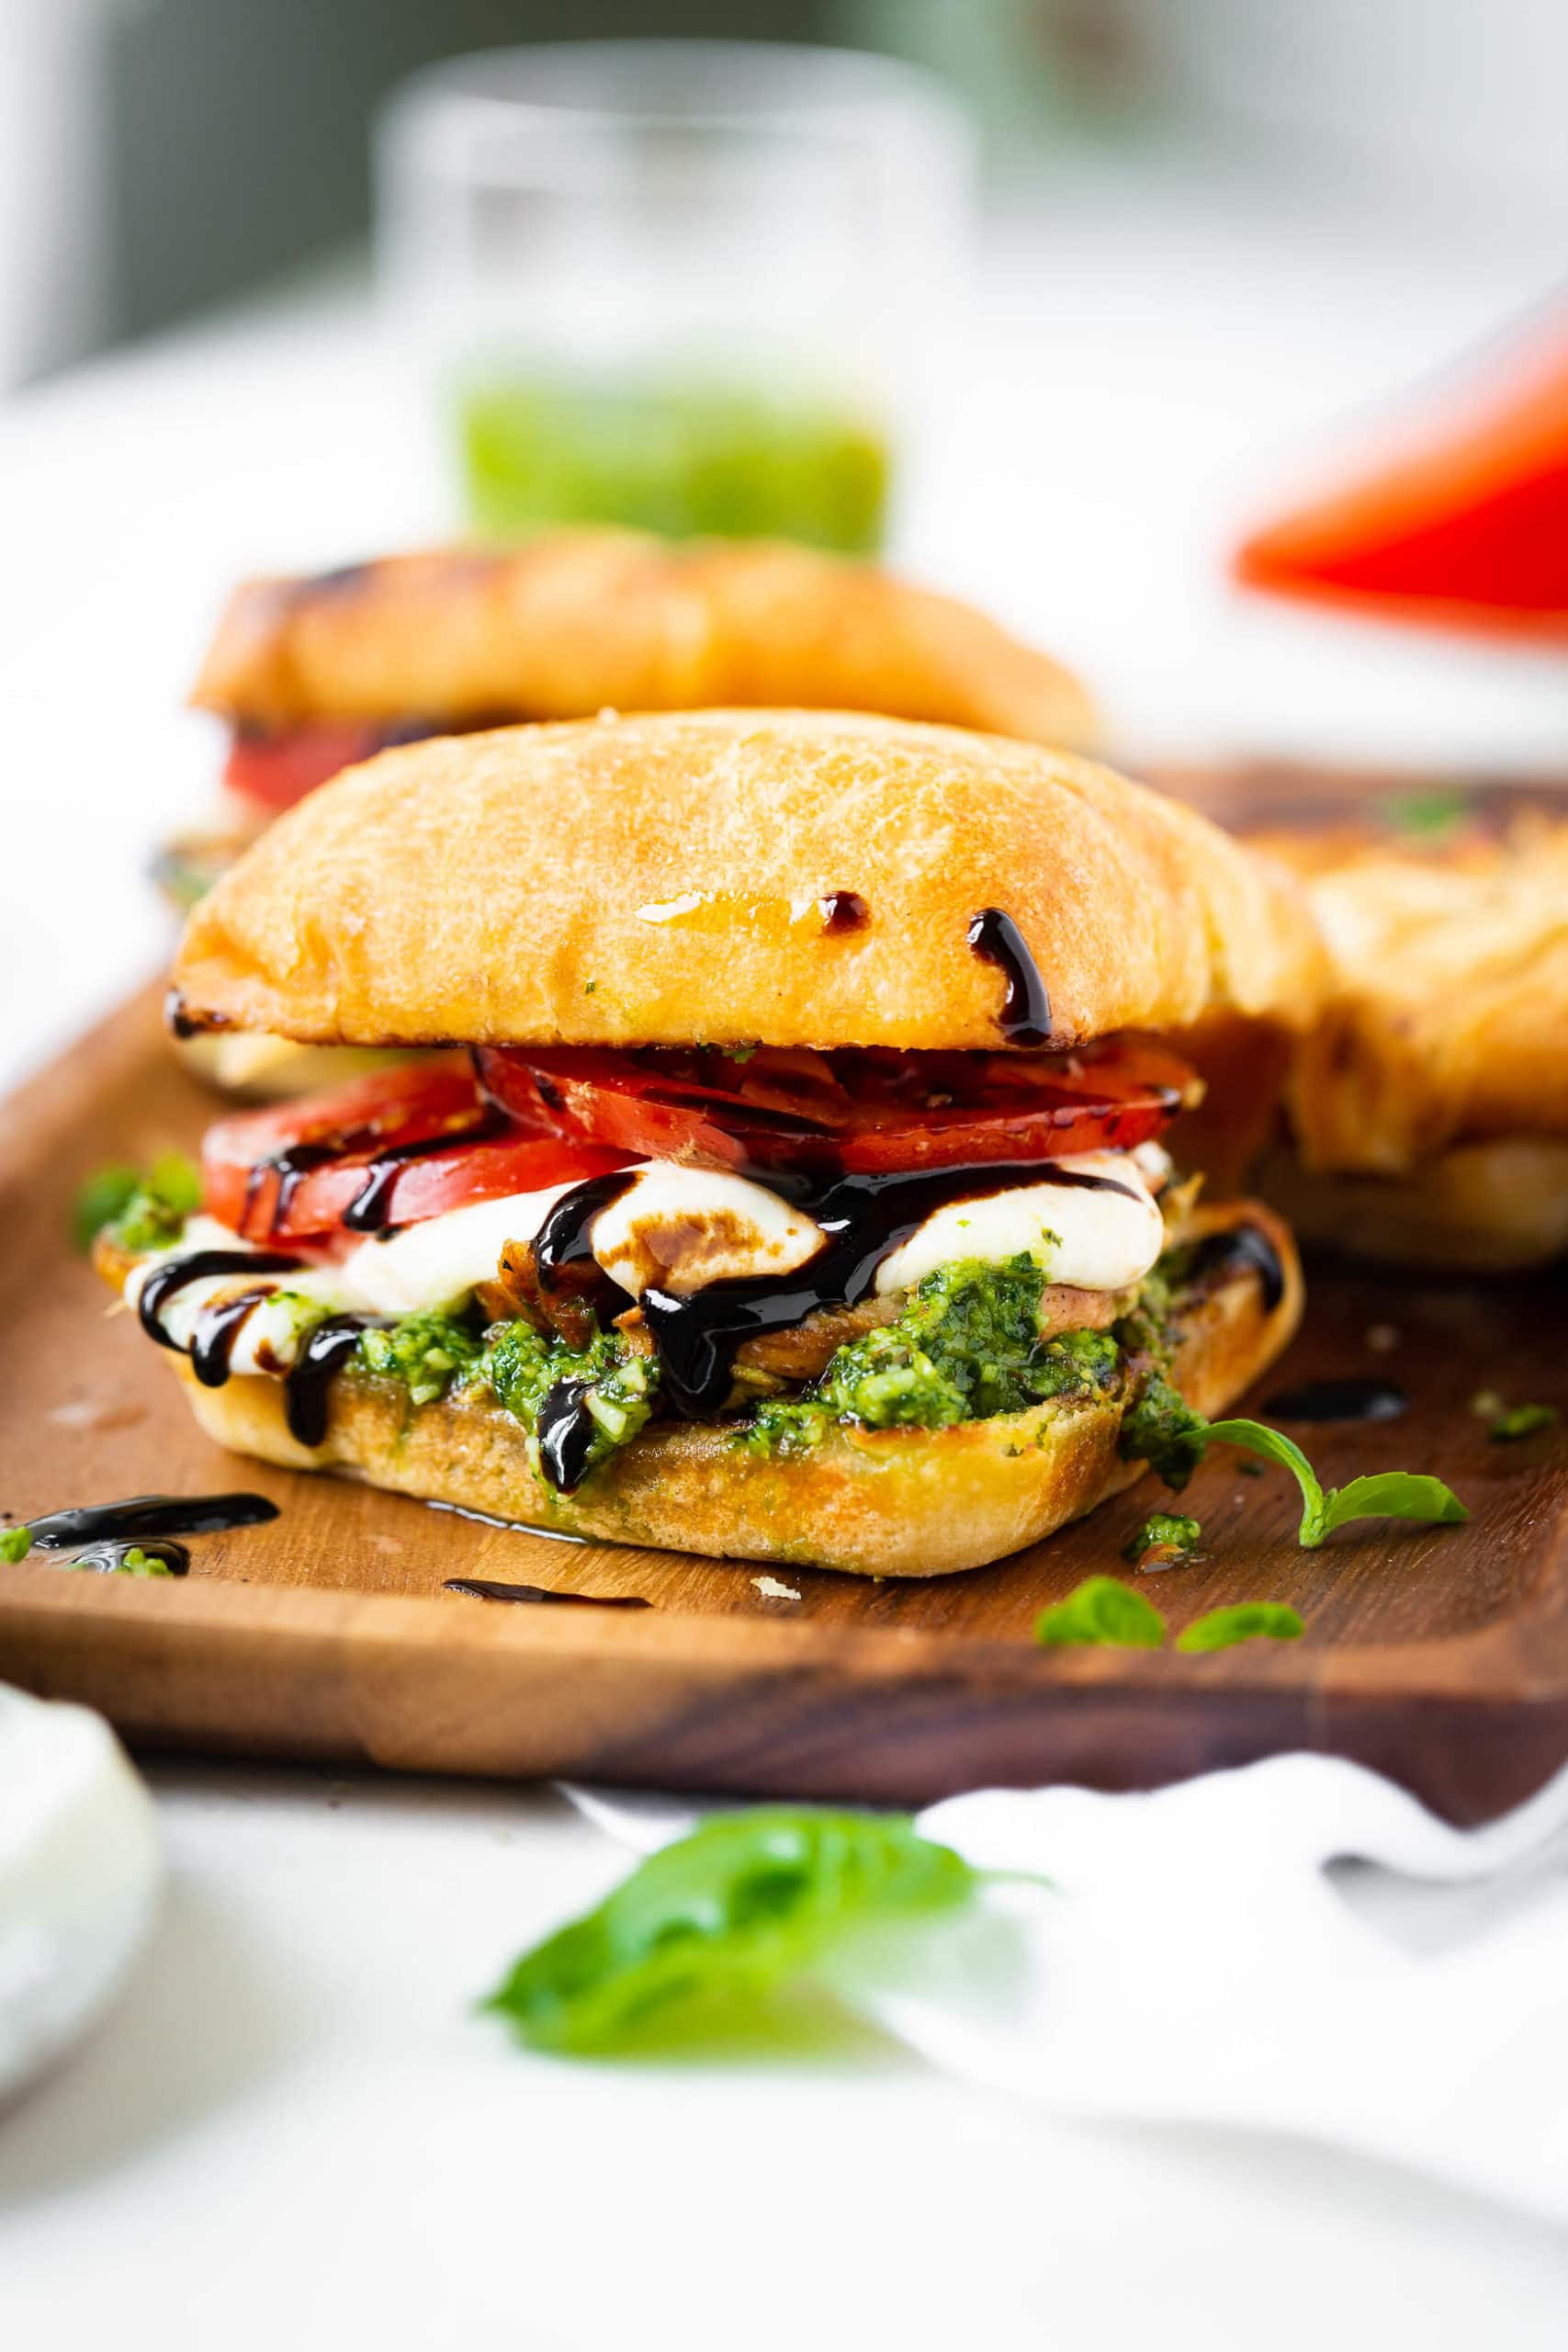 a photo of a chicken caprese sandwich completely assembled sitting on a wooden serving tray. The sandwich has pesto, fresh mozzarella, tomato, chicken, and balsamic glaze all on a toasted ciabatta bun.